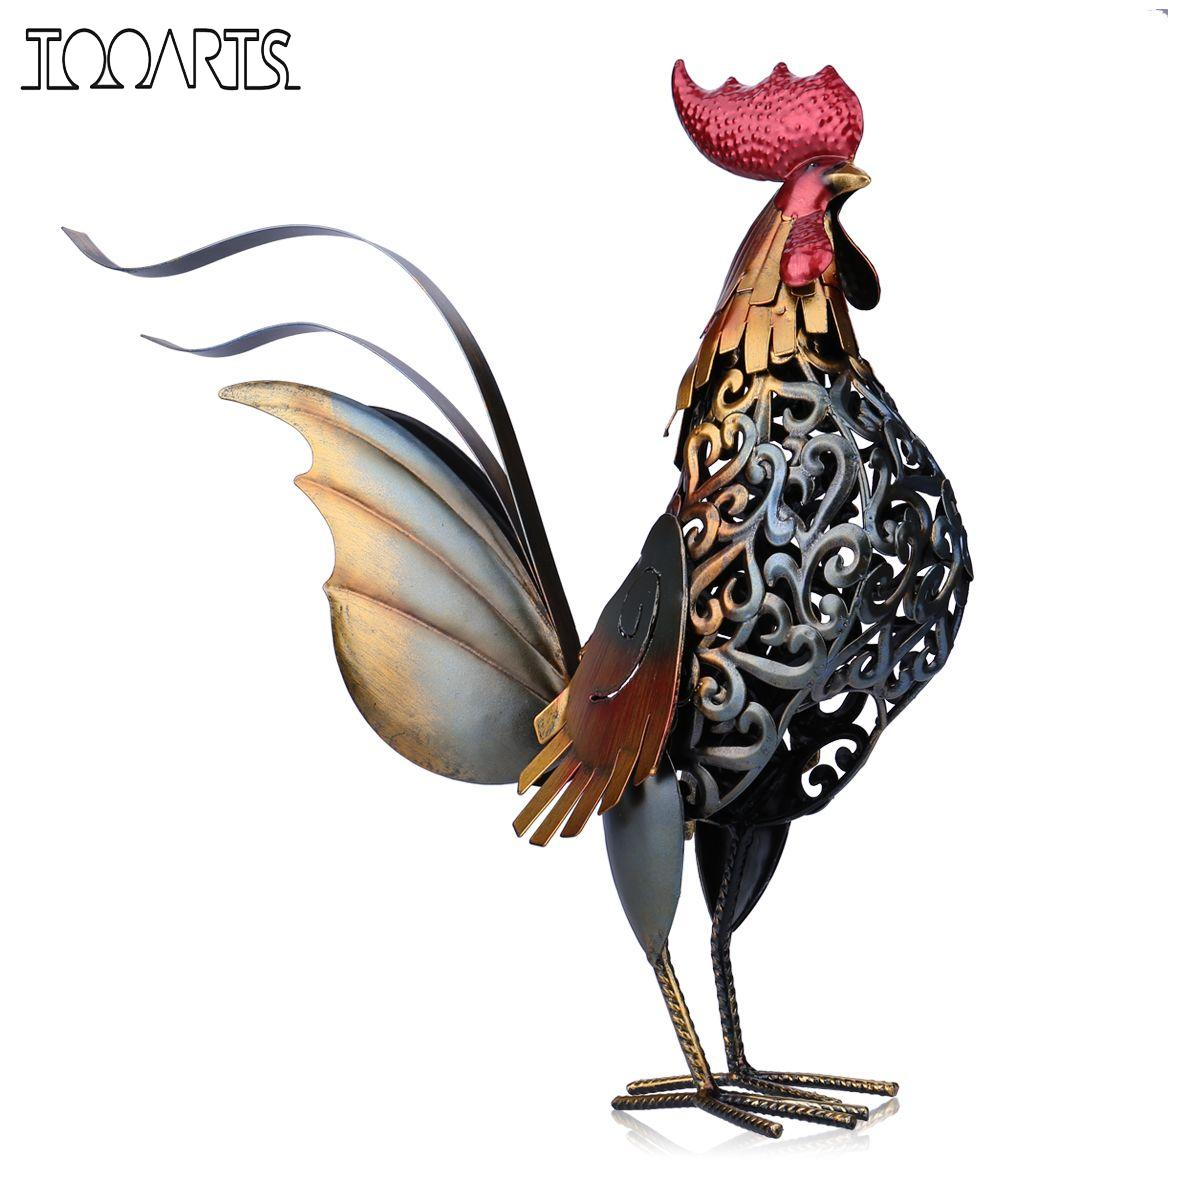 Tooarts Metal Figurine Iron Rooster Home Decor Articles Vivid Colorful Figurine Craft Gift For Home Decoration Accessories